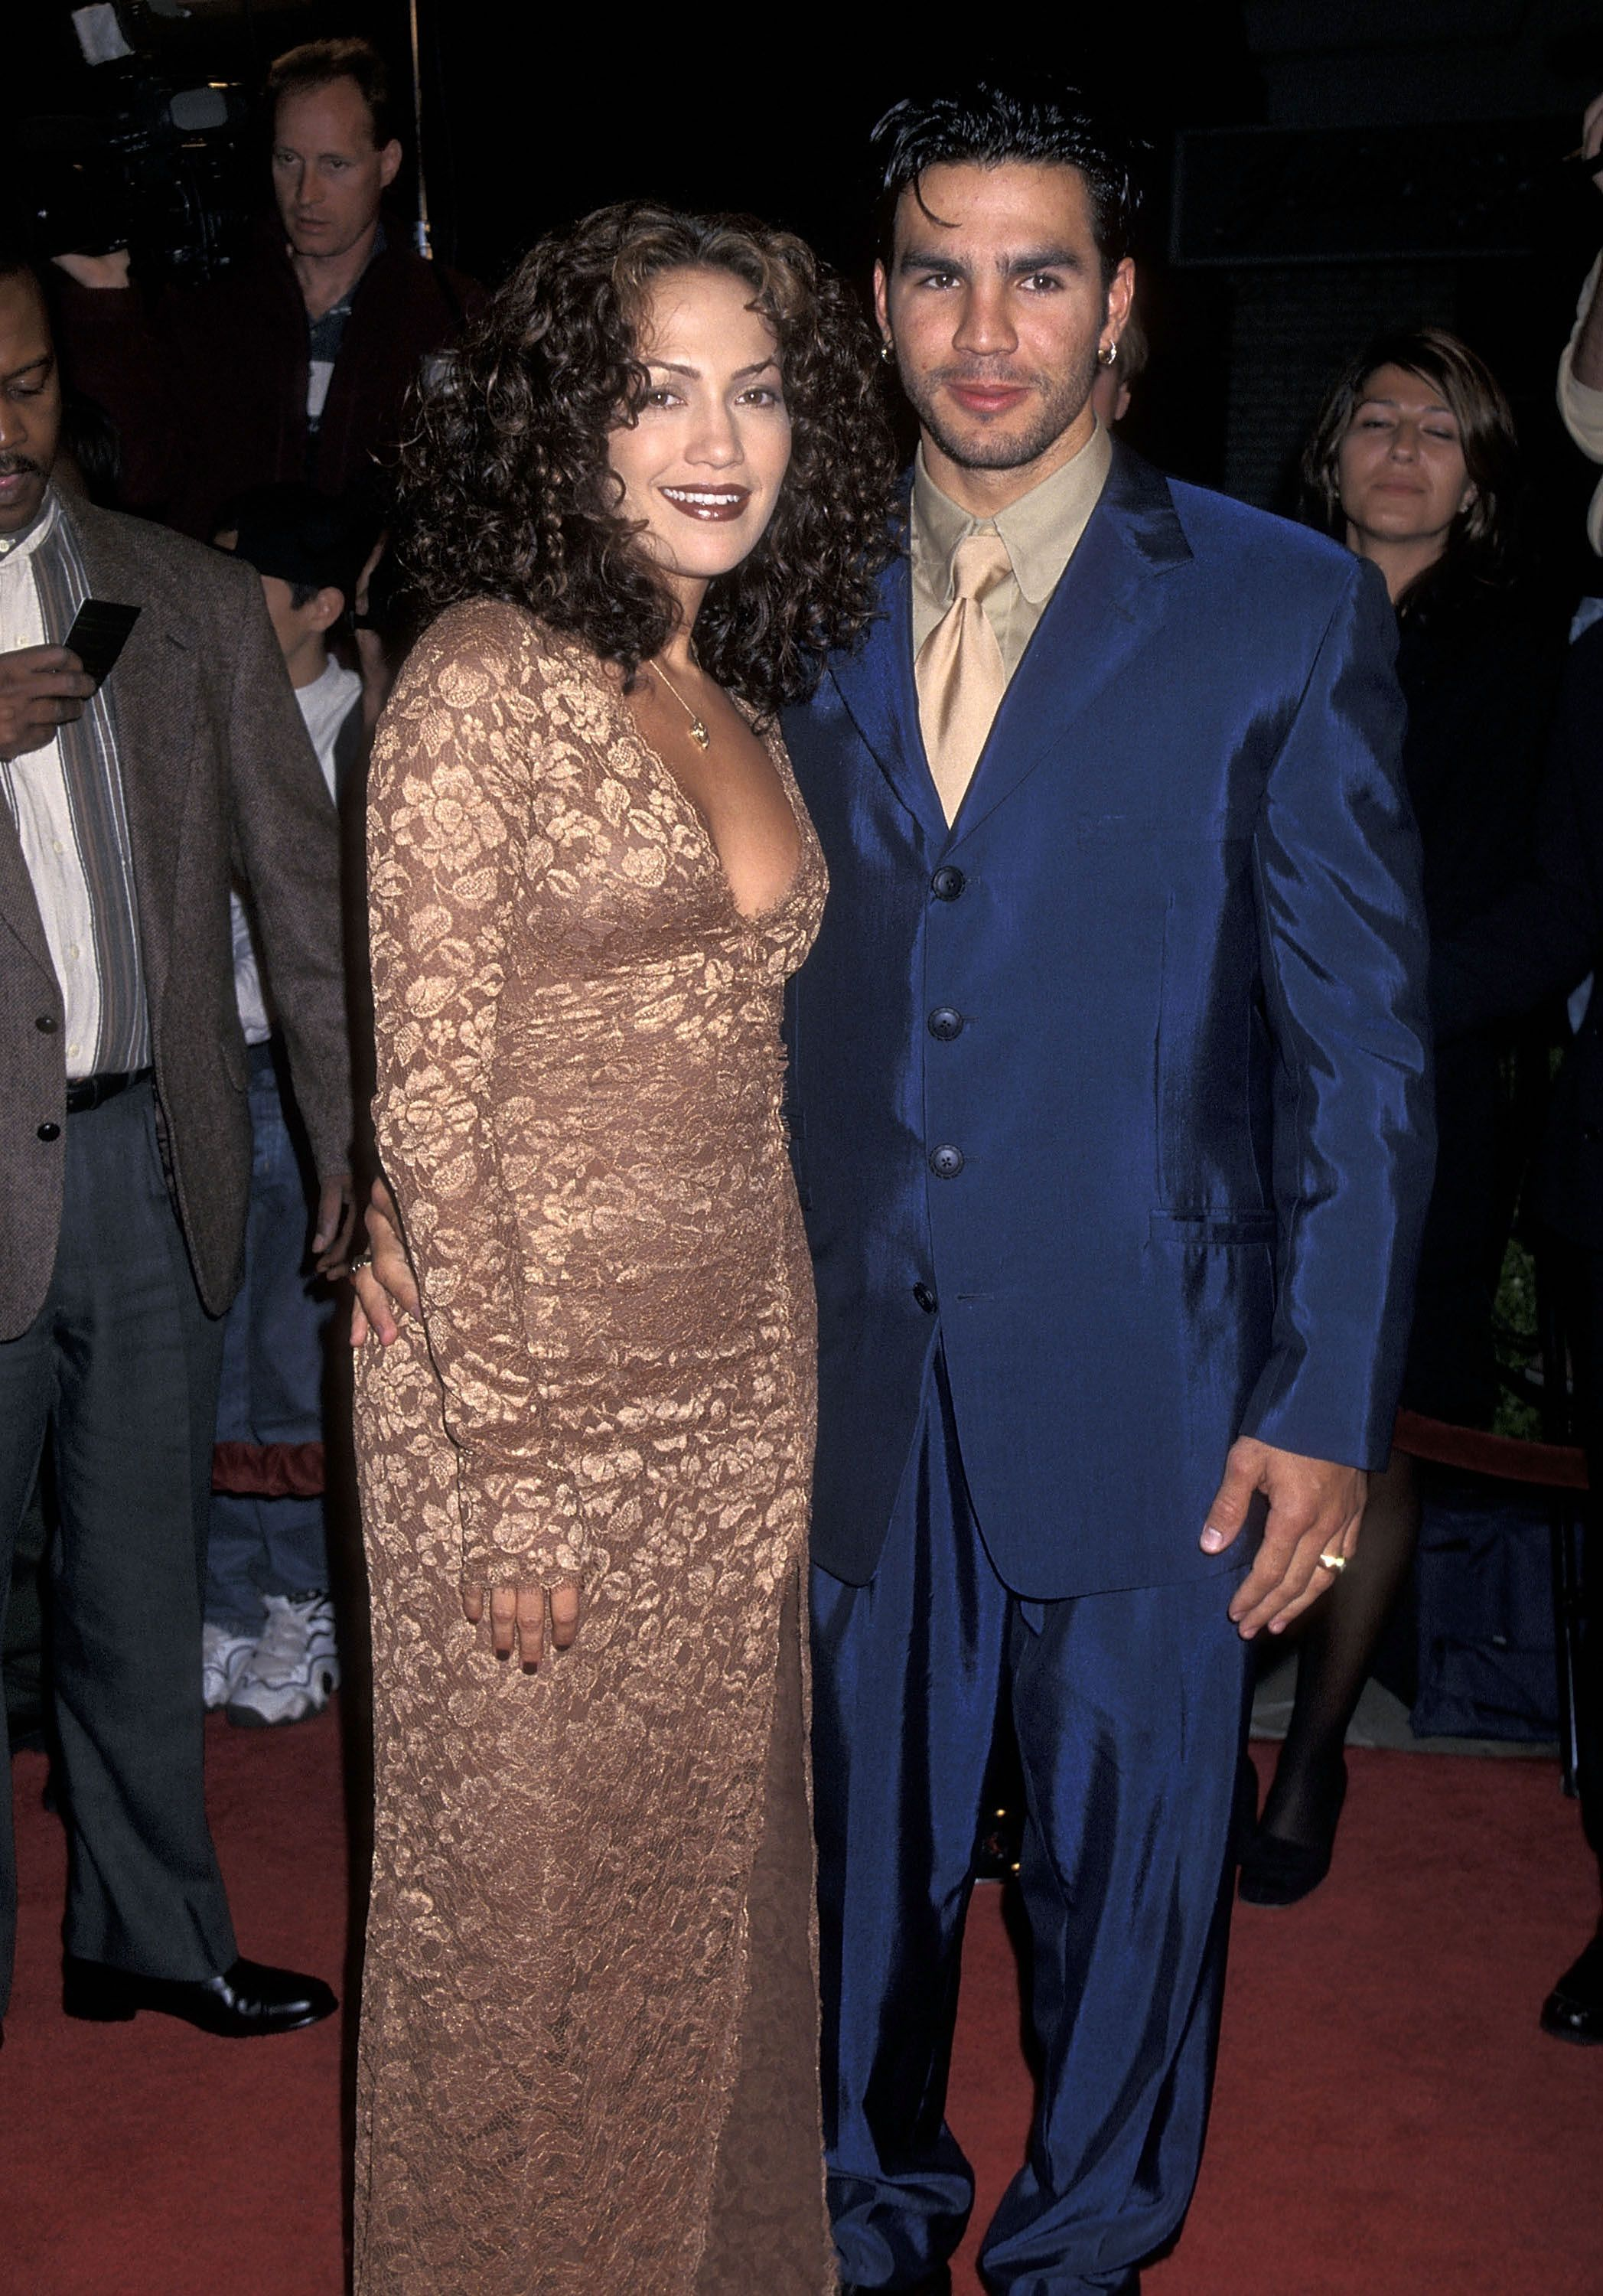 """Jennifer Lopez and husband Ojani Noa at the """"Anaconda"""" Westwood Premiere on April 7, 1997, at Mann Village Theatre in Westwood, California   Photo: Getty Images"""